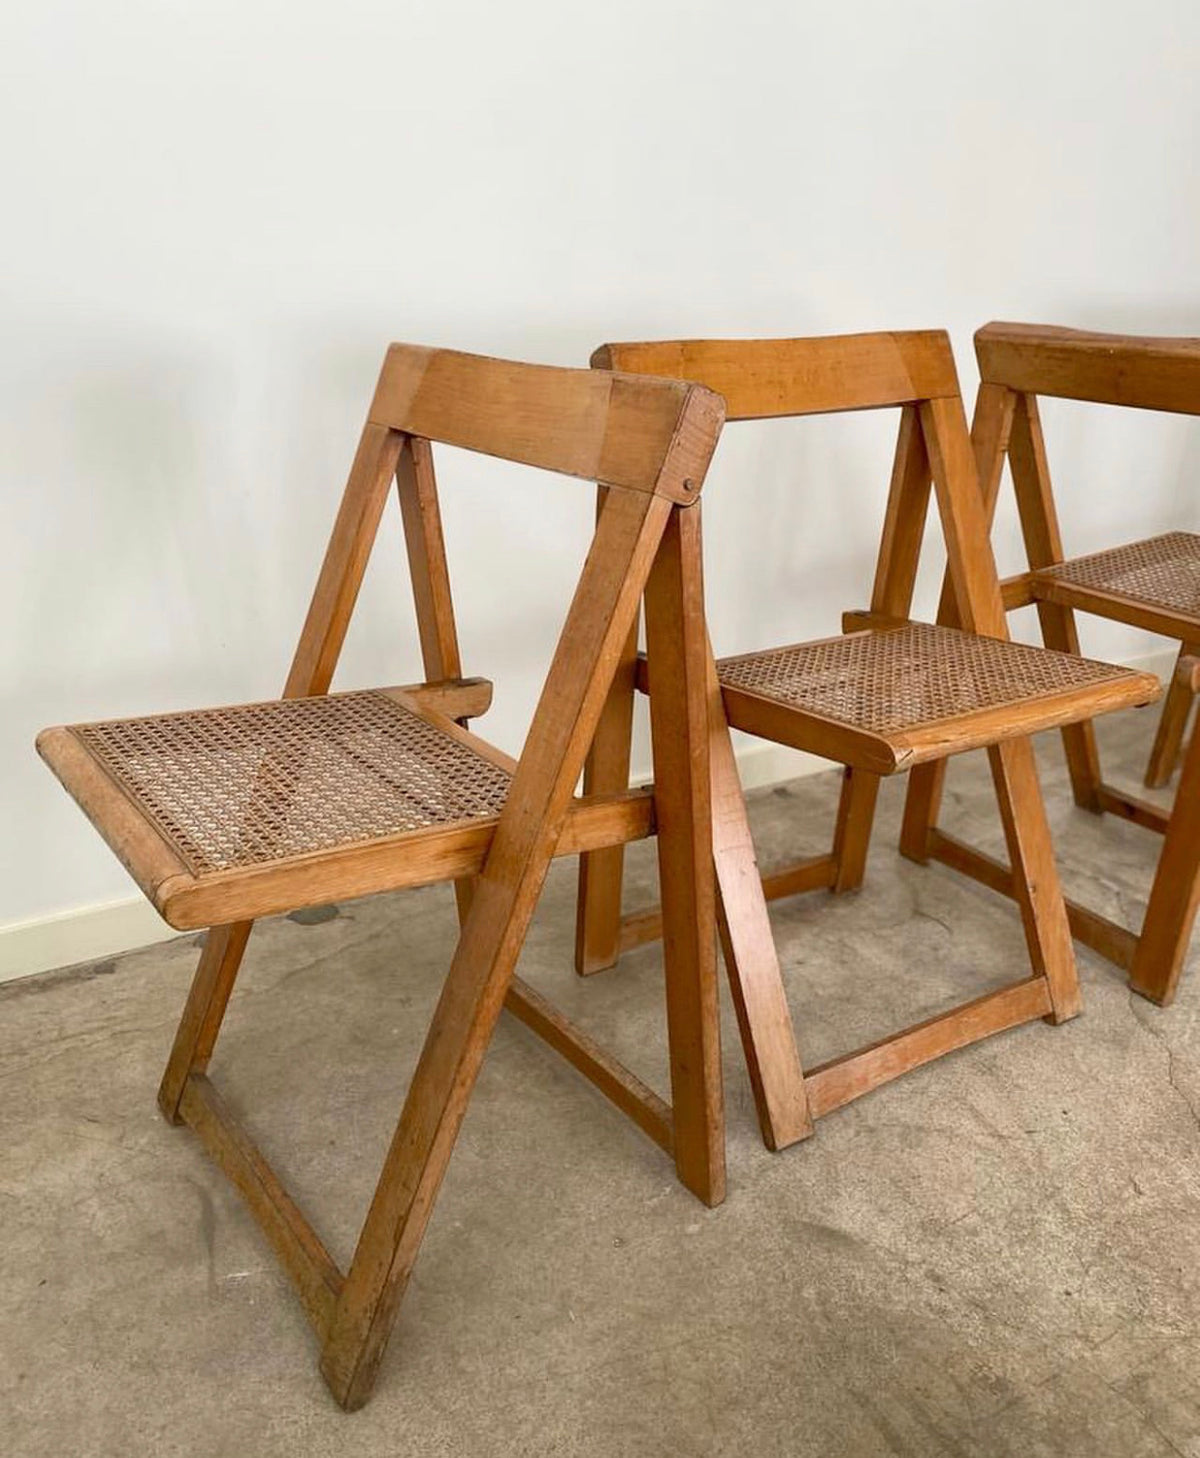 Mid Century Italian Aldo Jacober and Pierangela d'aniello Folding Chairs